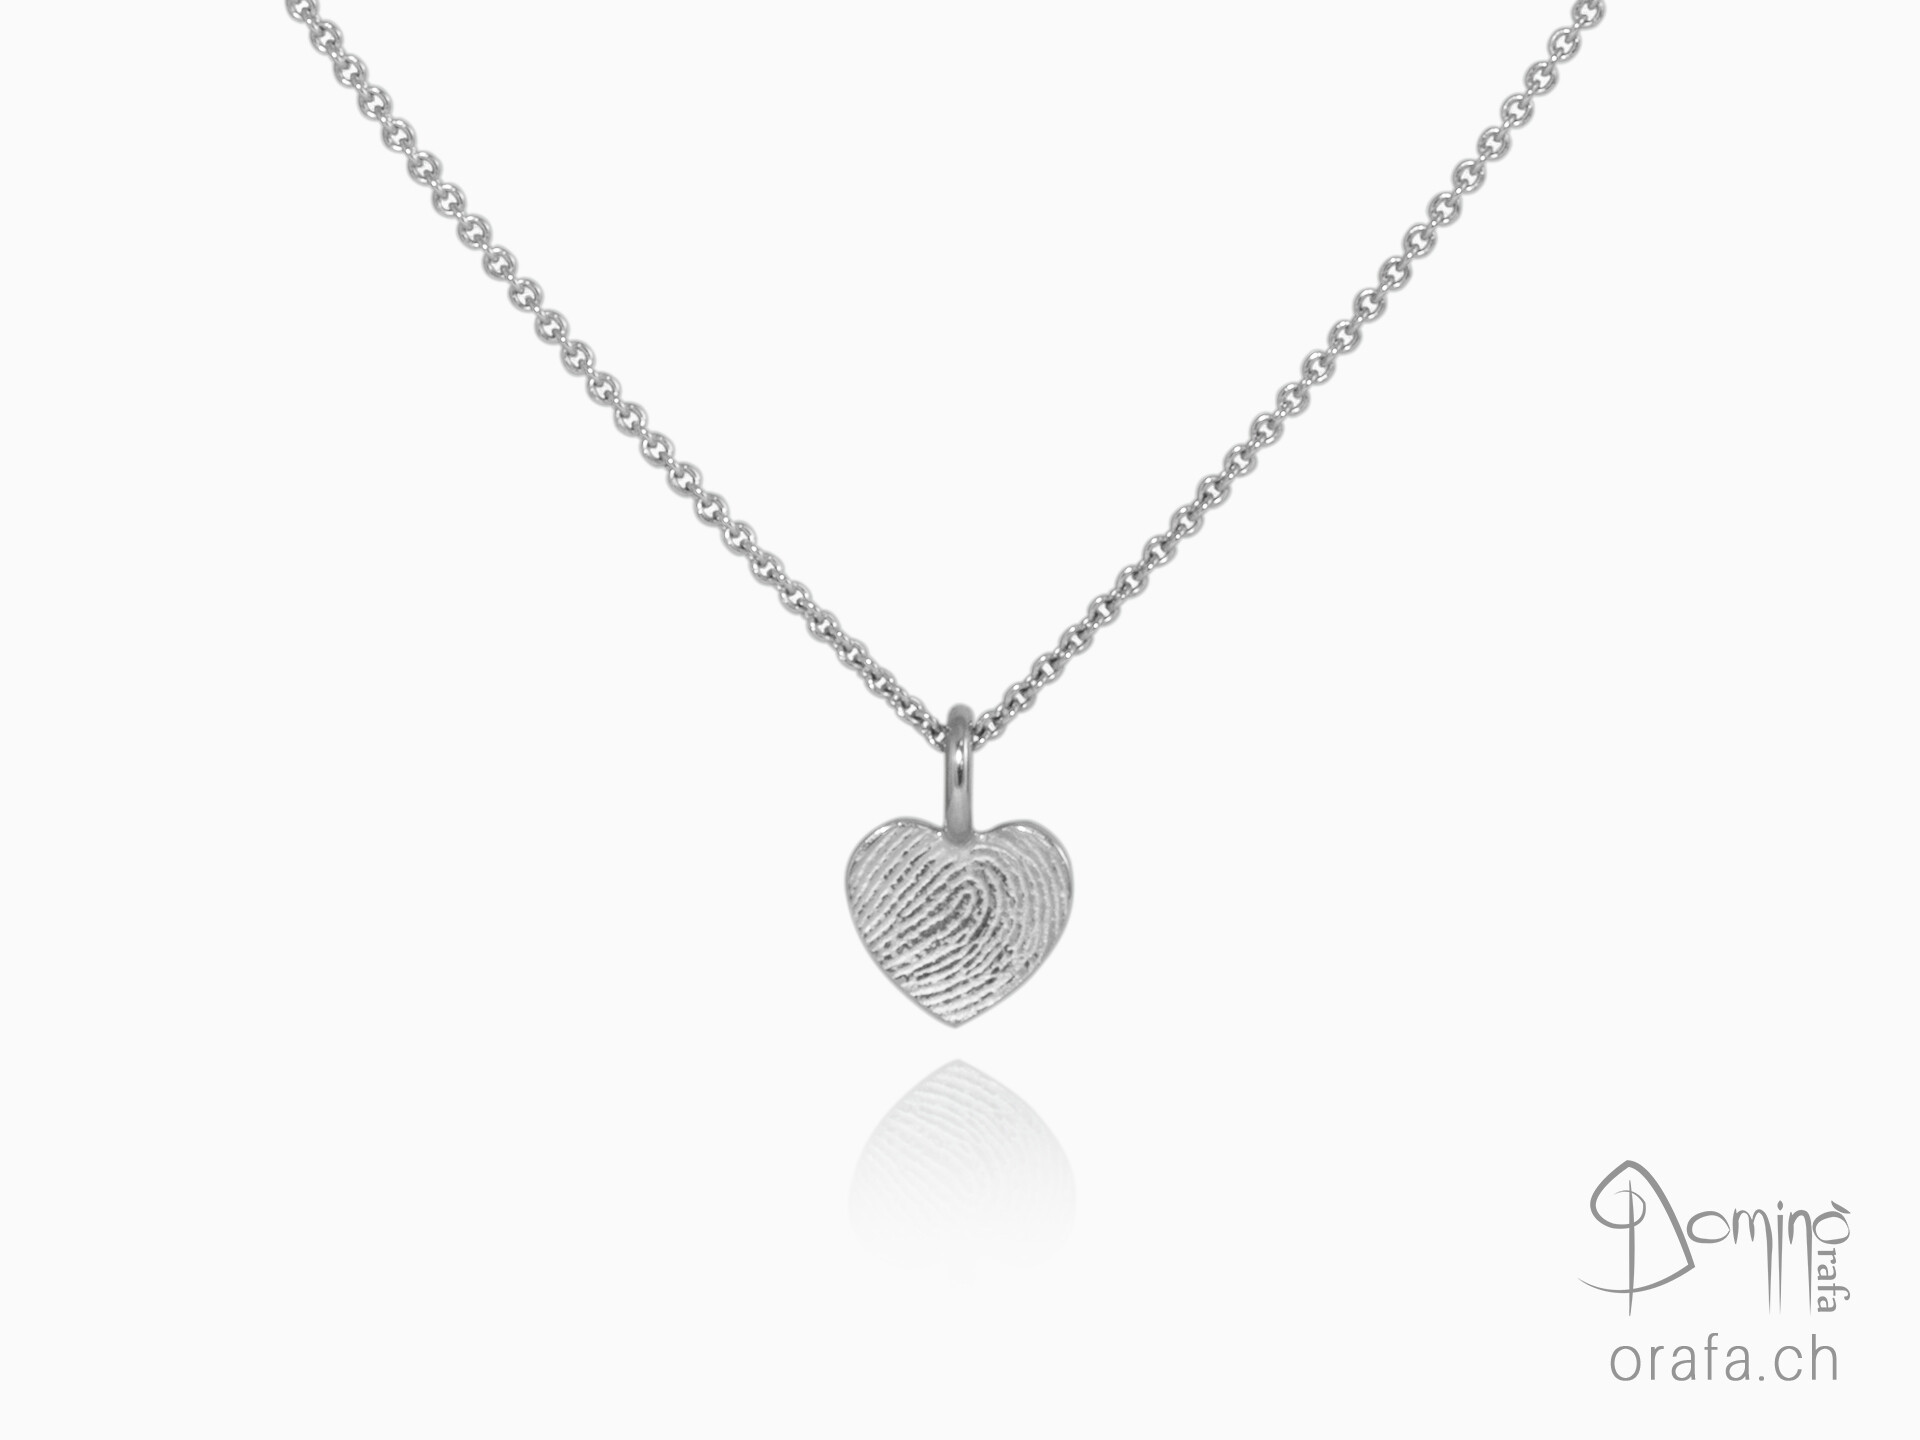 Heart pendant with fingerprint